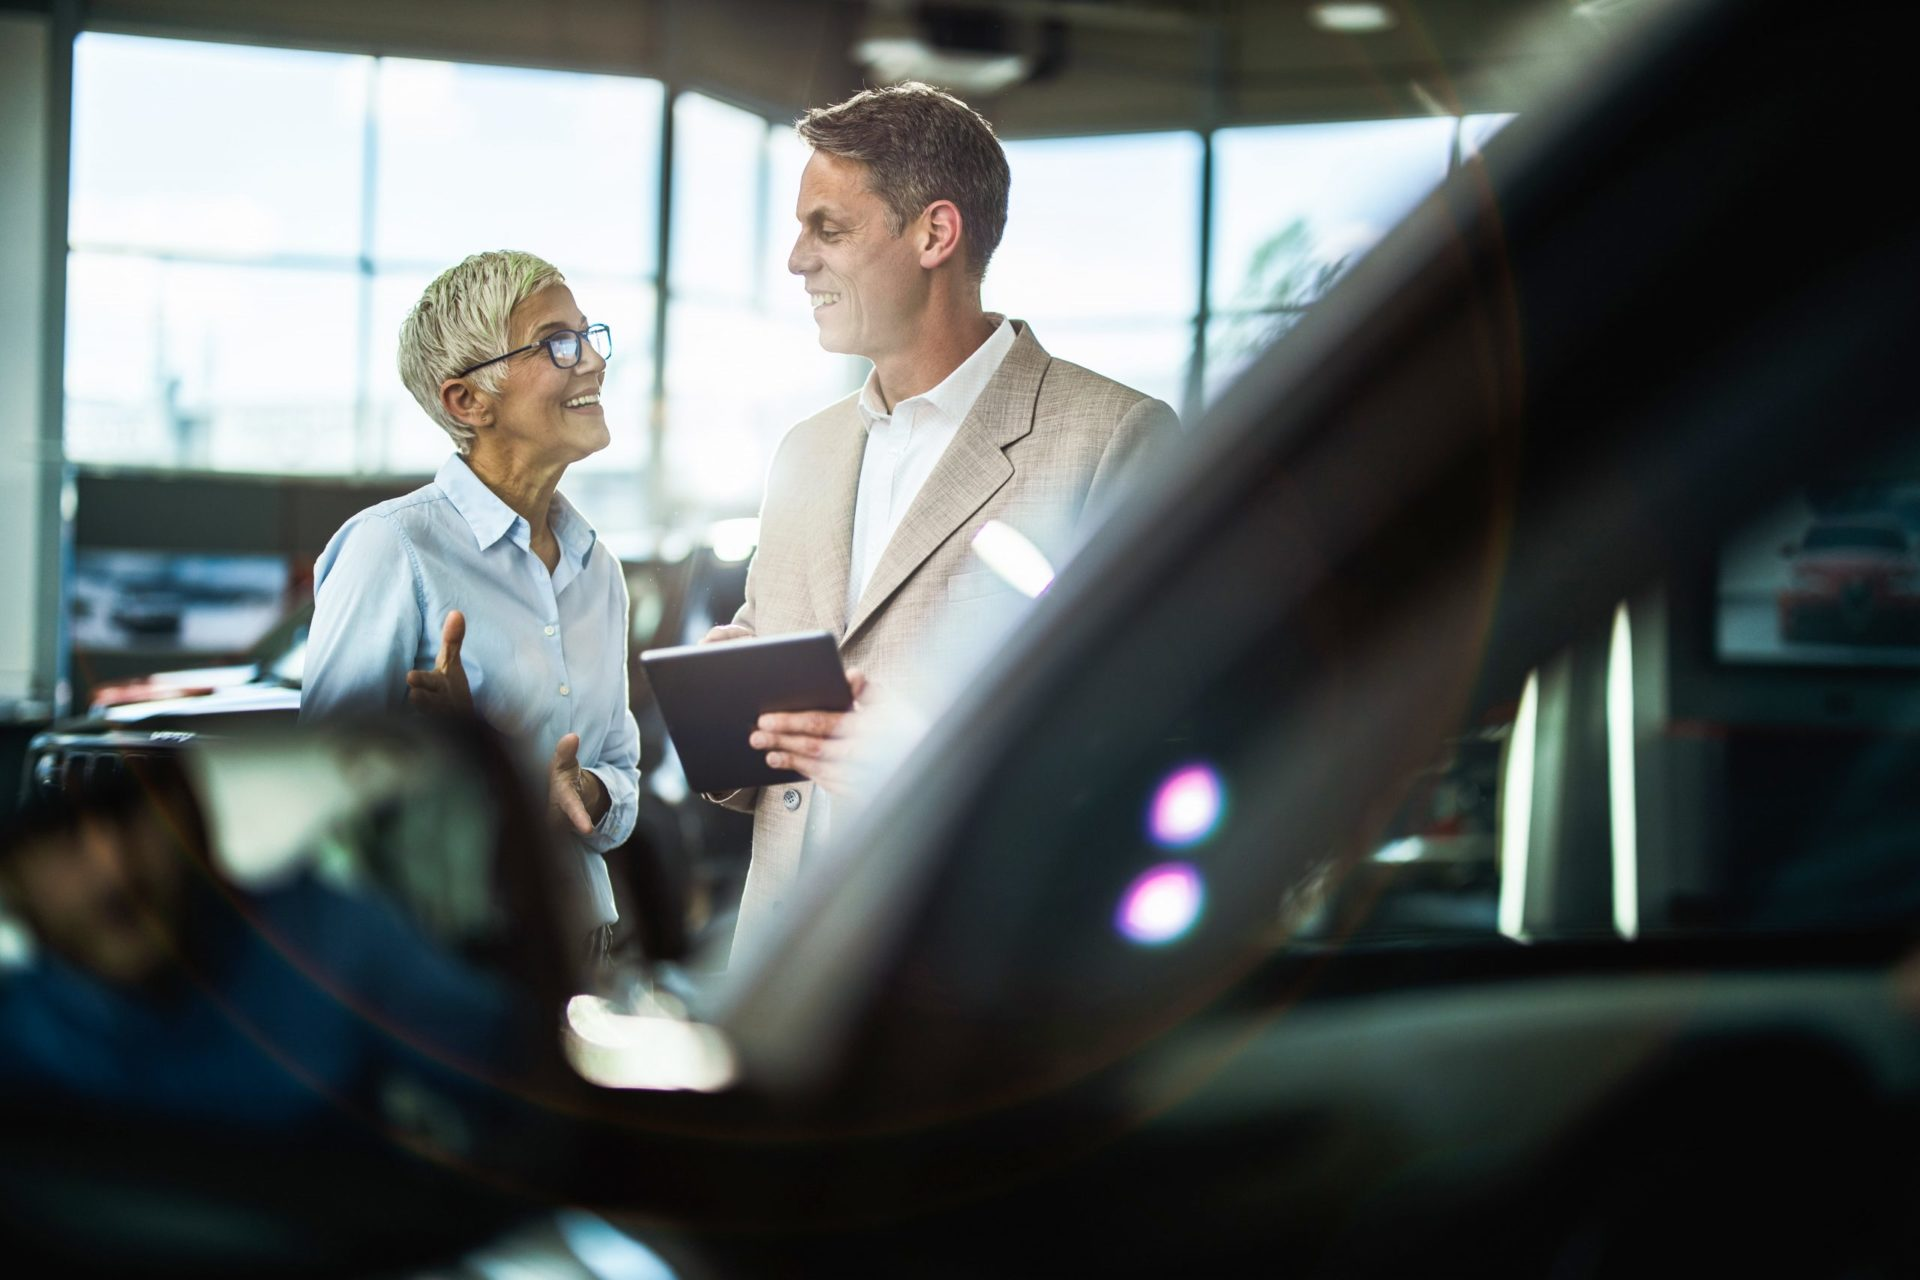 car buyer and salesperson shaking hands in a dealership showroom